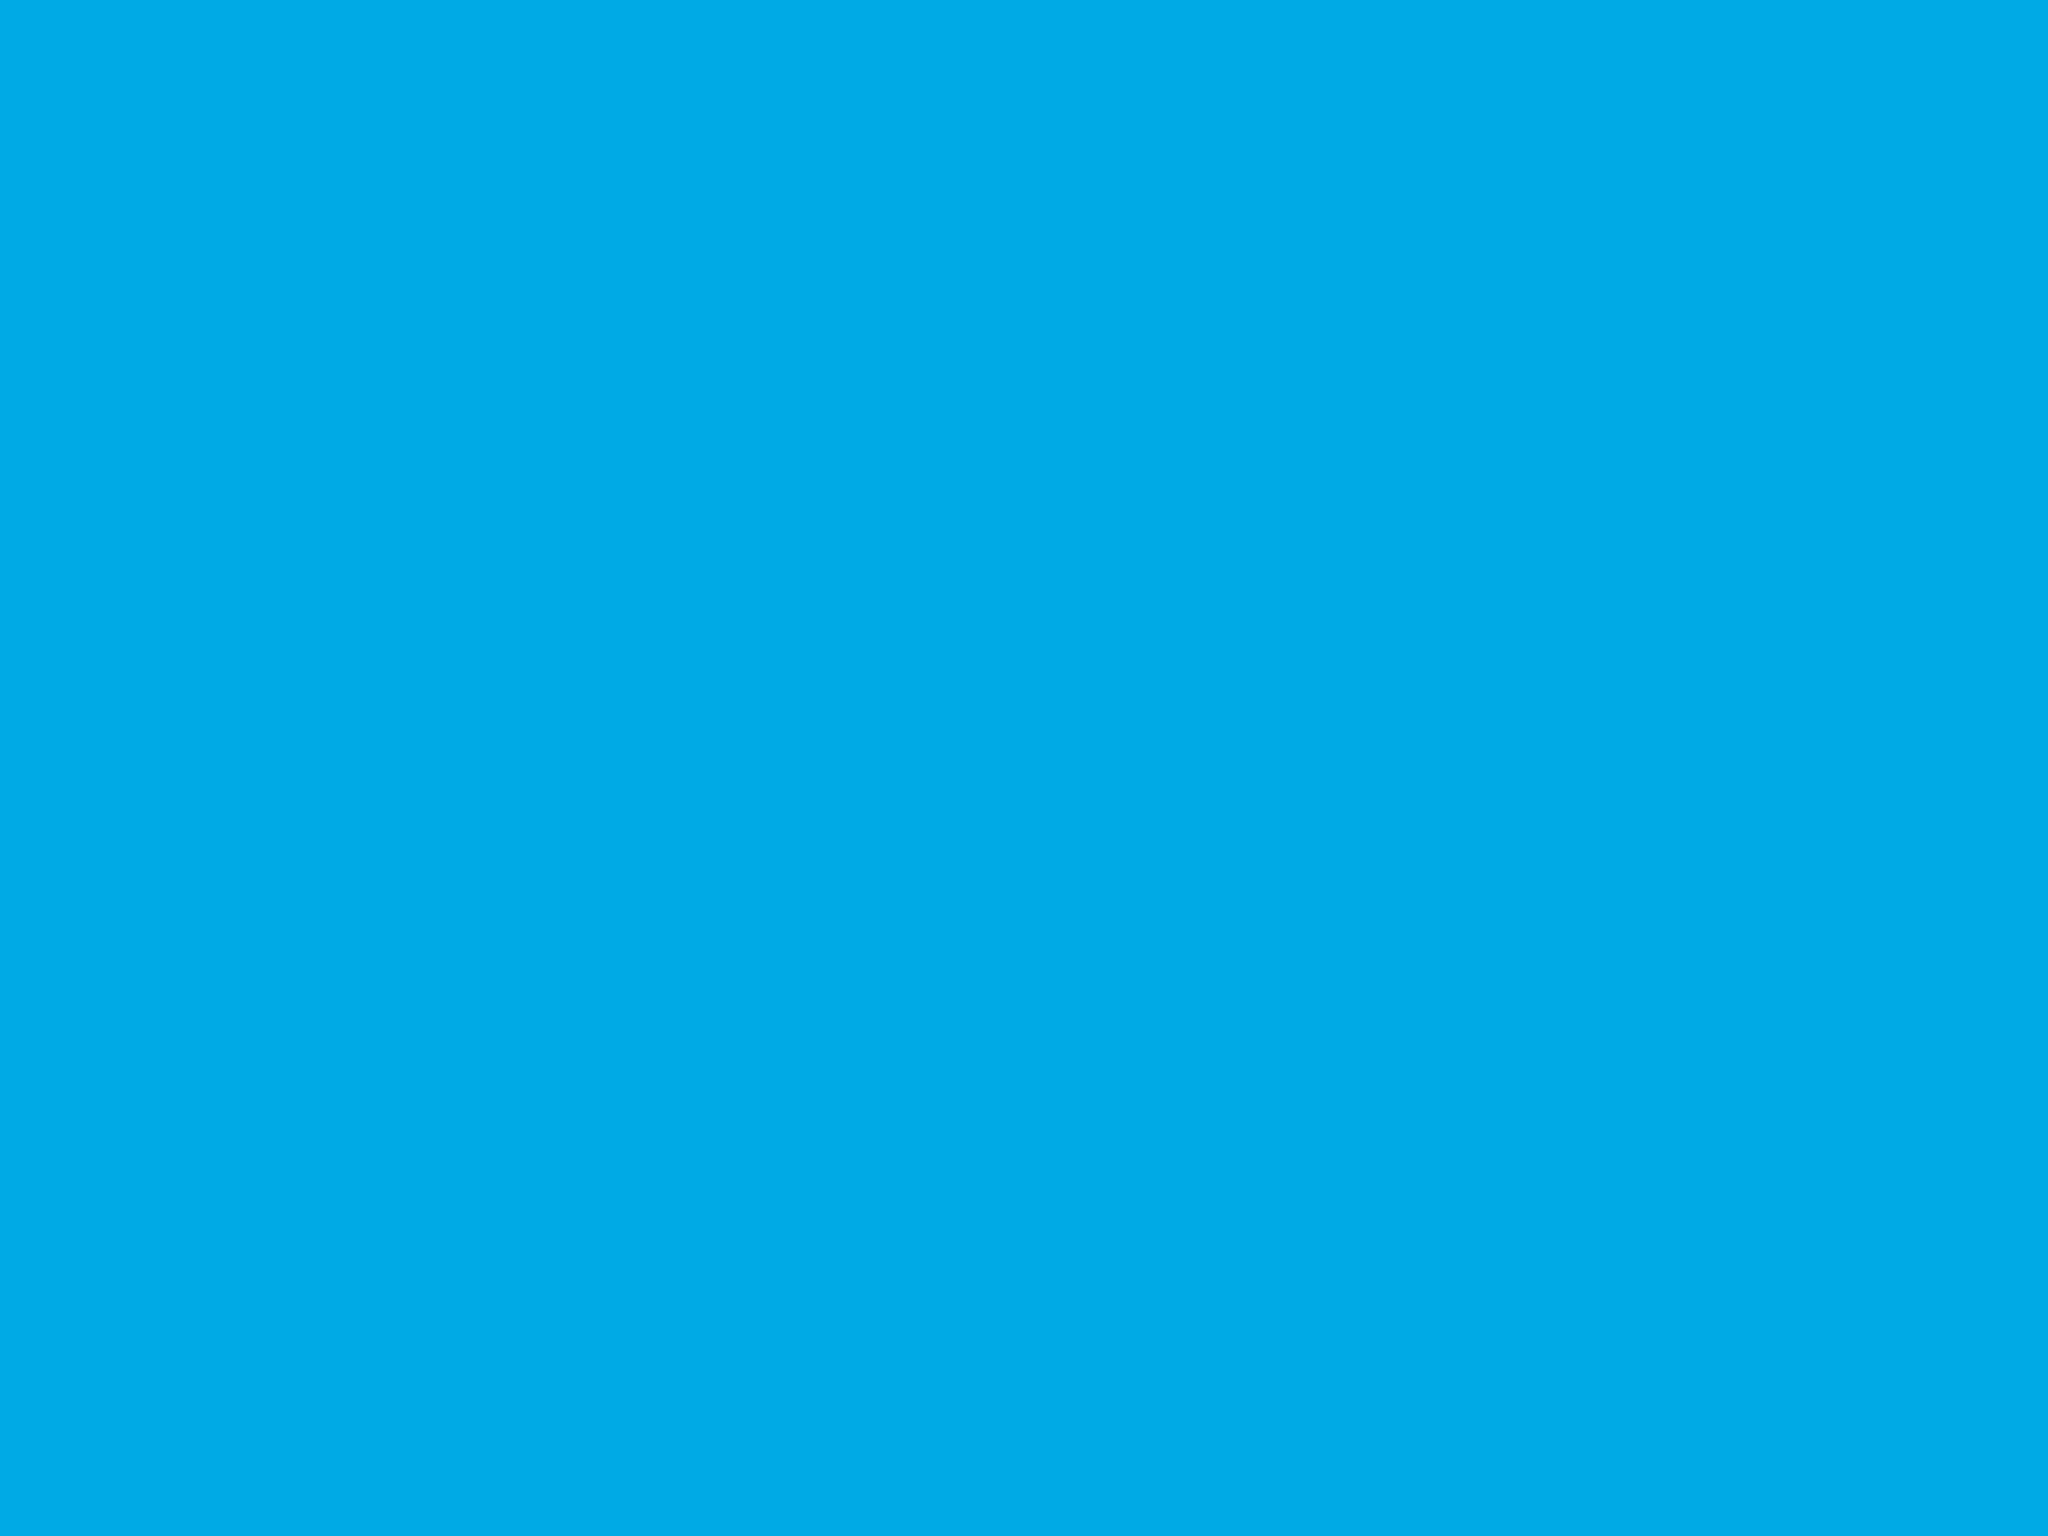 2048x1536 Spanish Sky Blue Solid Color Background